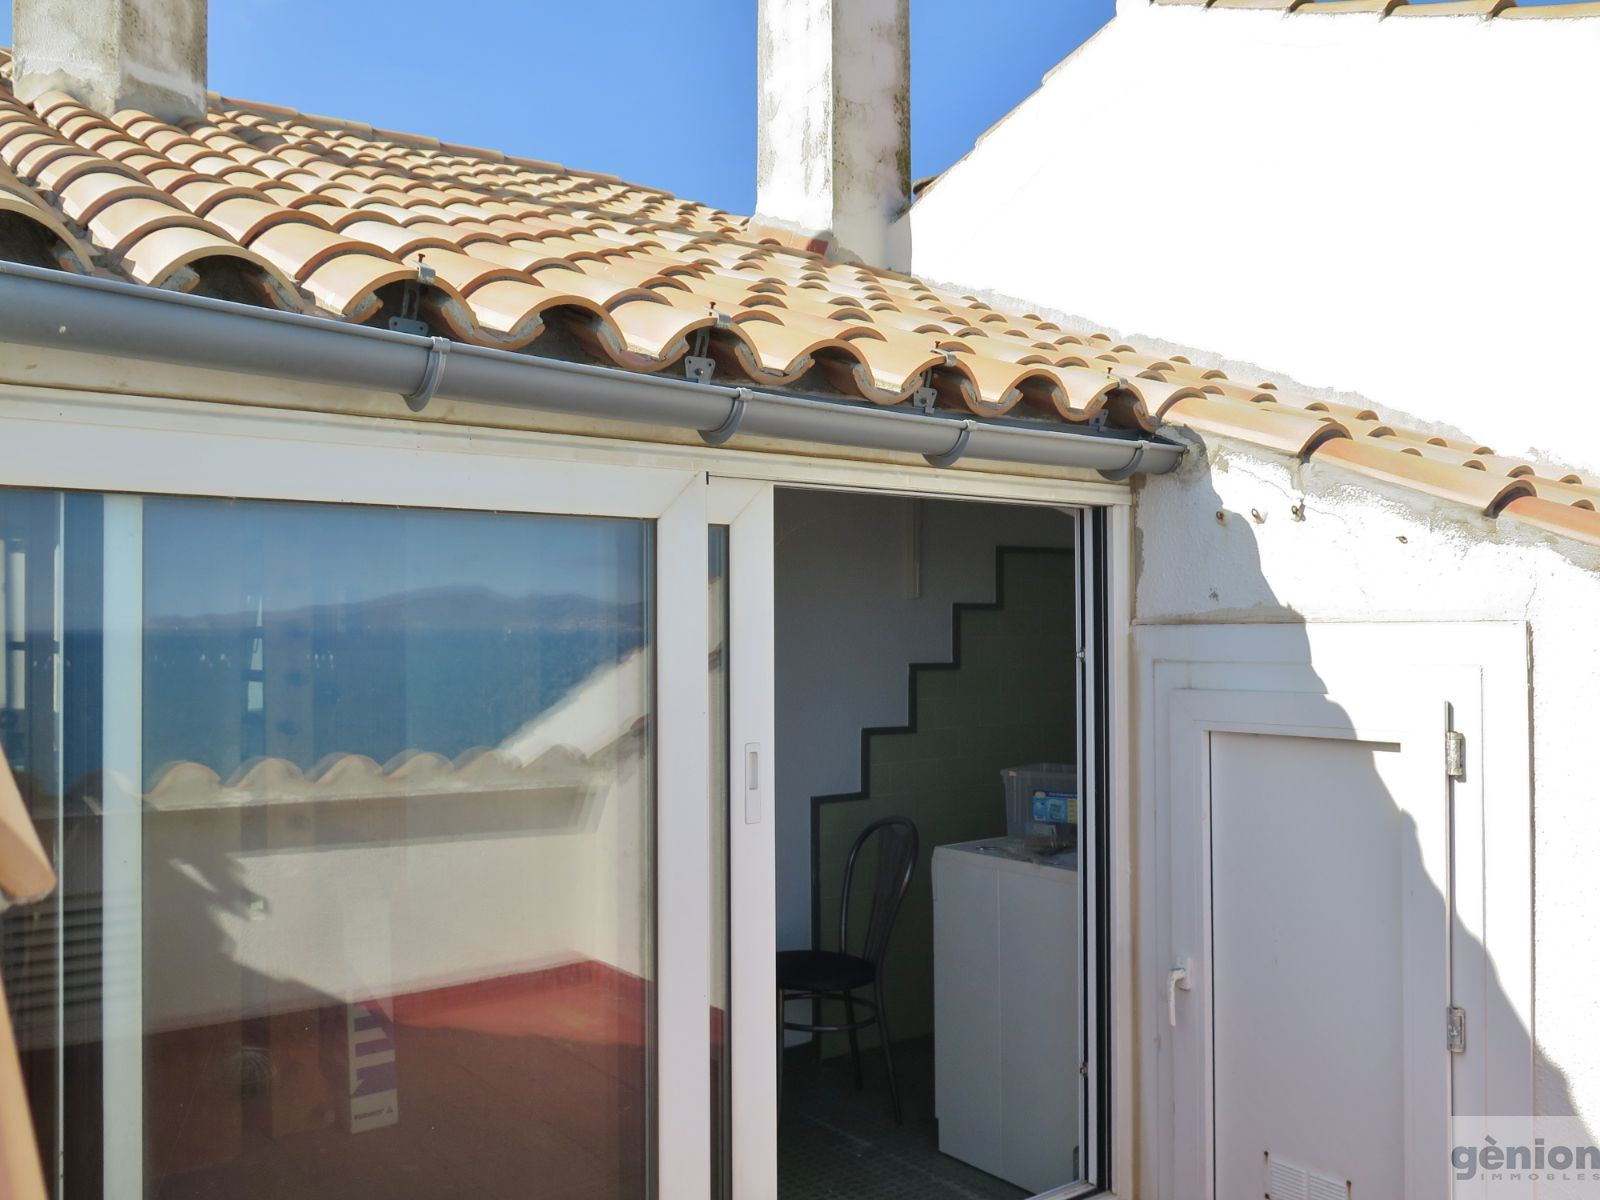 TWO-STOREY ATTIC APARTMENT ON THE SEAFRONT IN L'ESCALA: 281 M² LIVING AREA, PARKING SPACE AND STORAGE ROOM